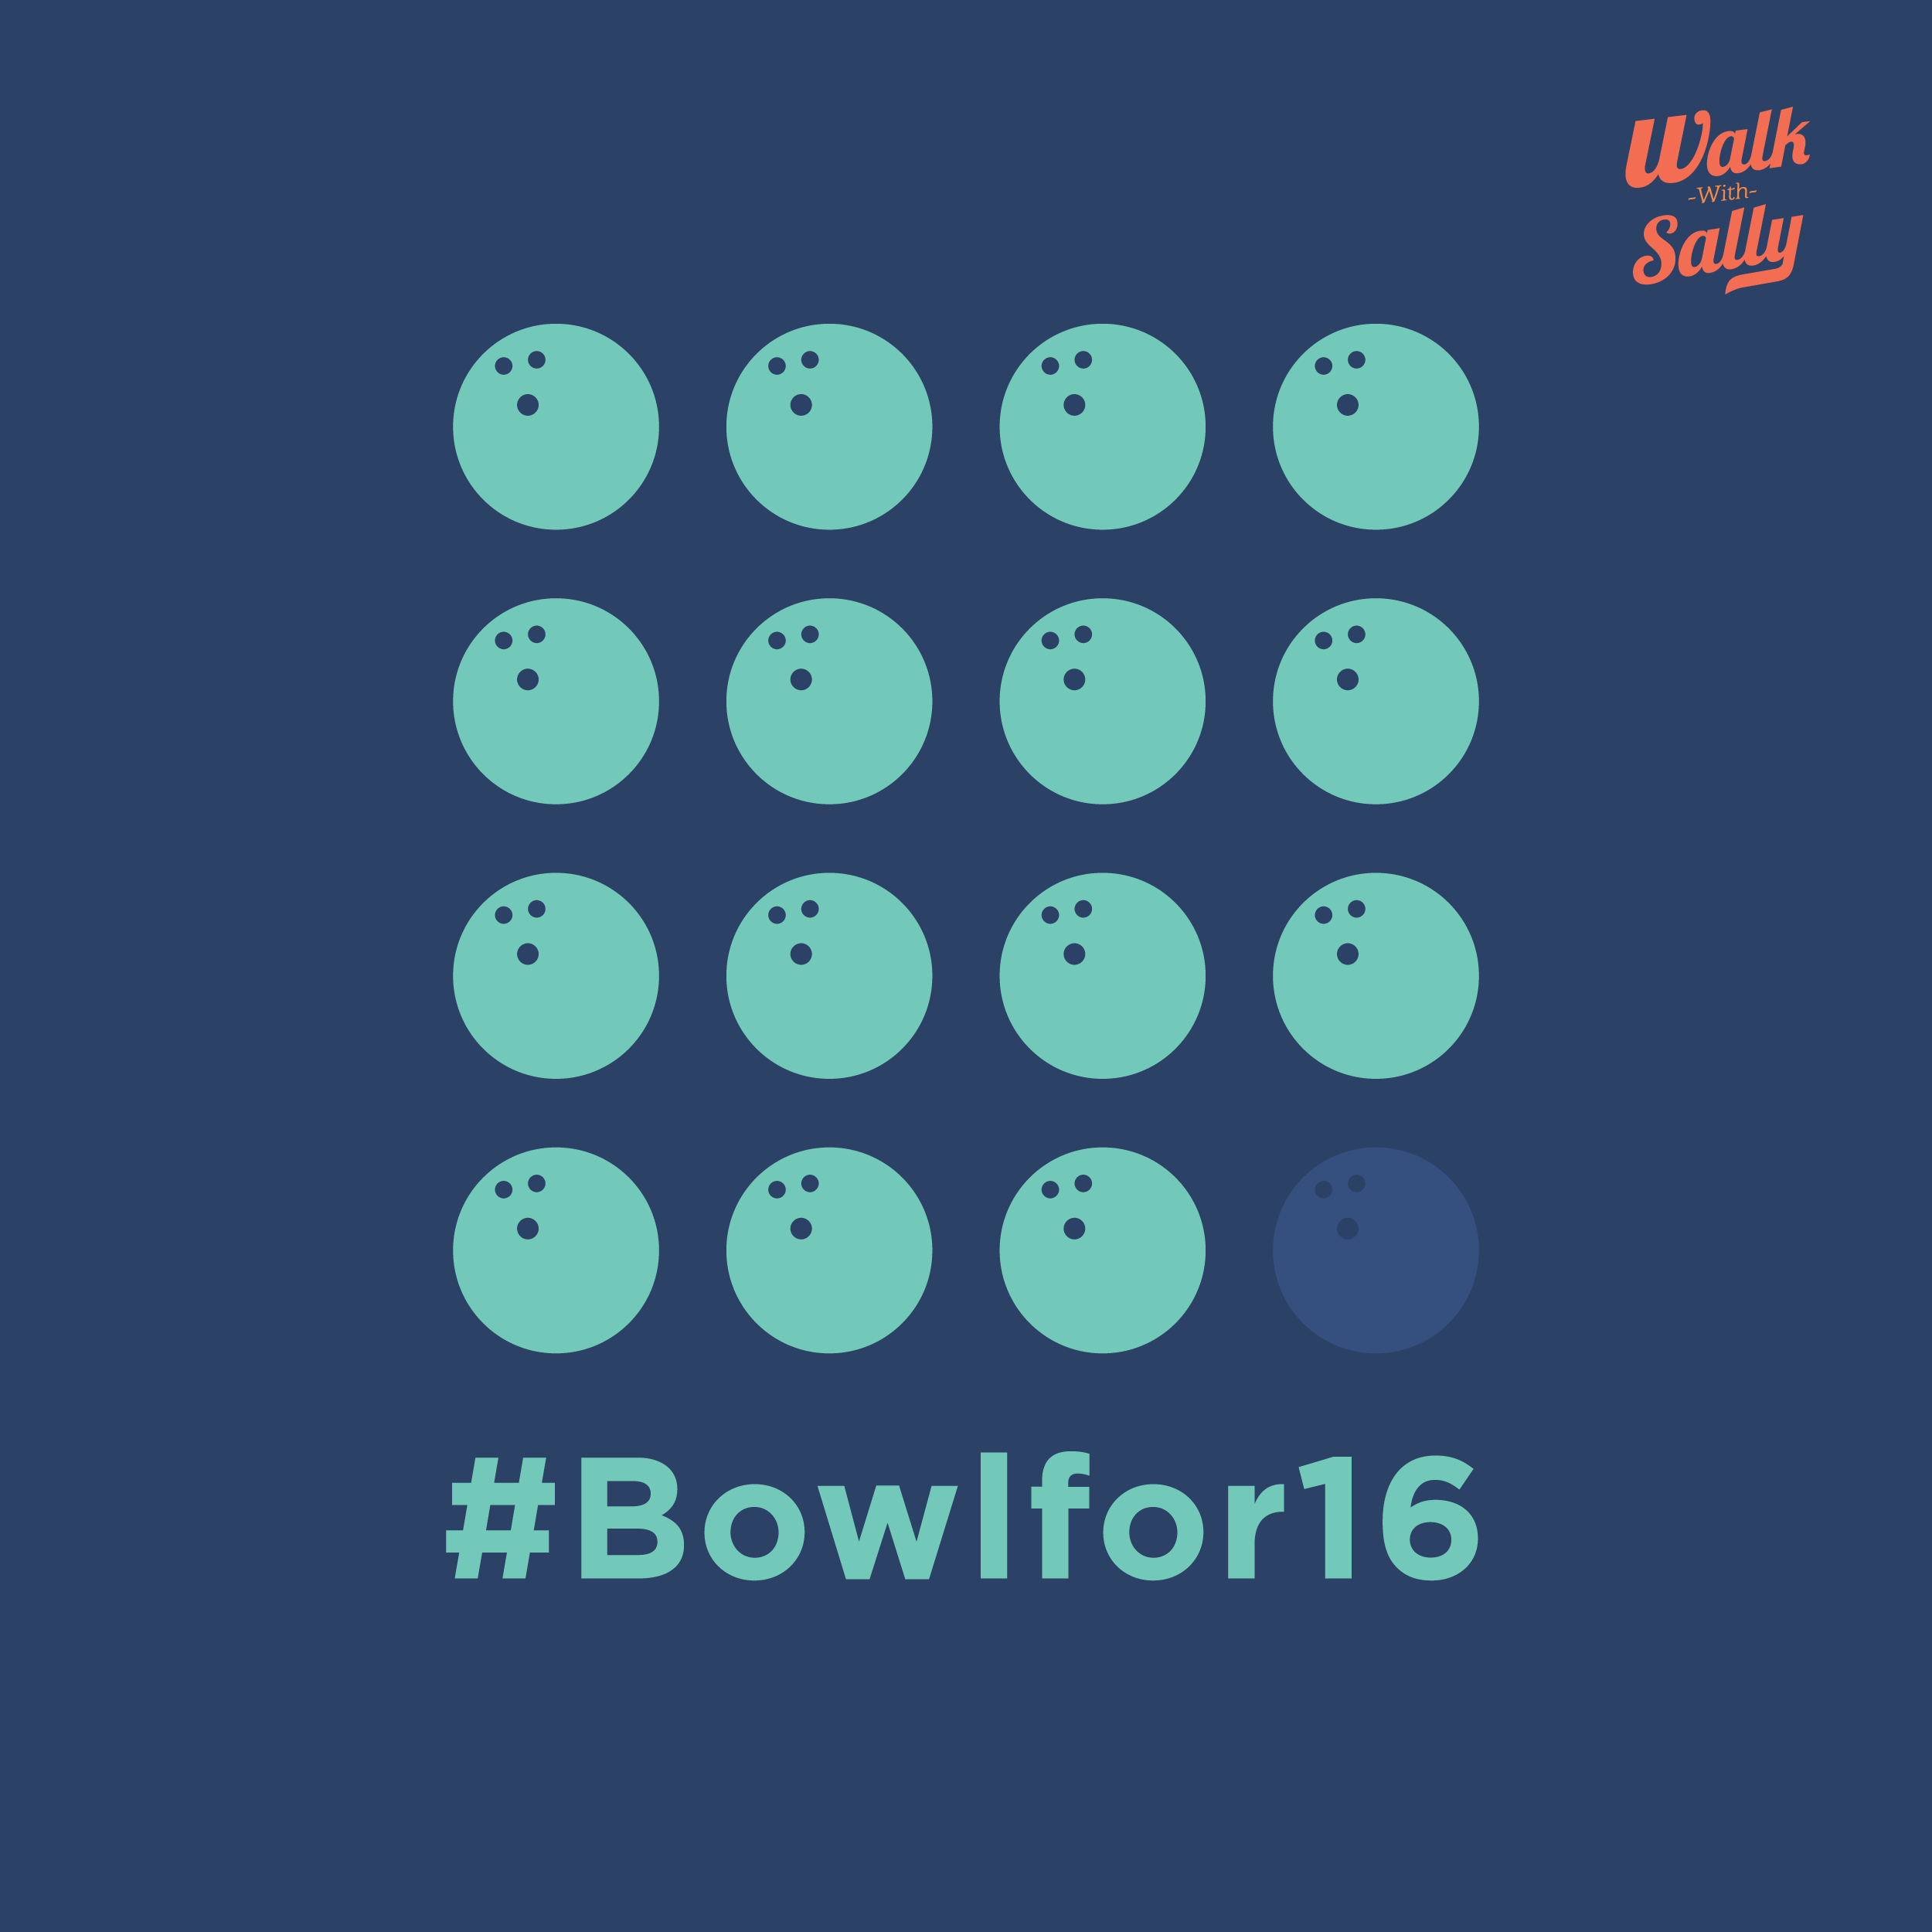 WWS_Bowling_CountUp_15 (1)